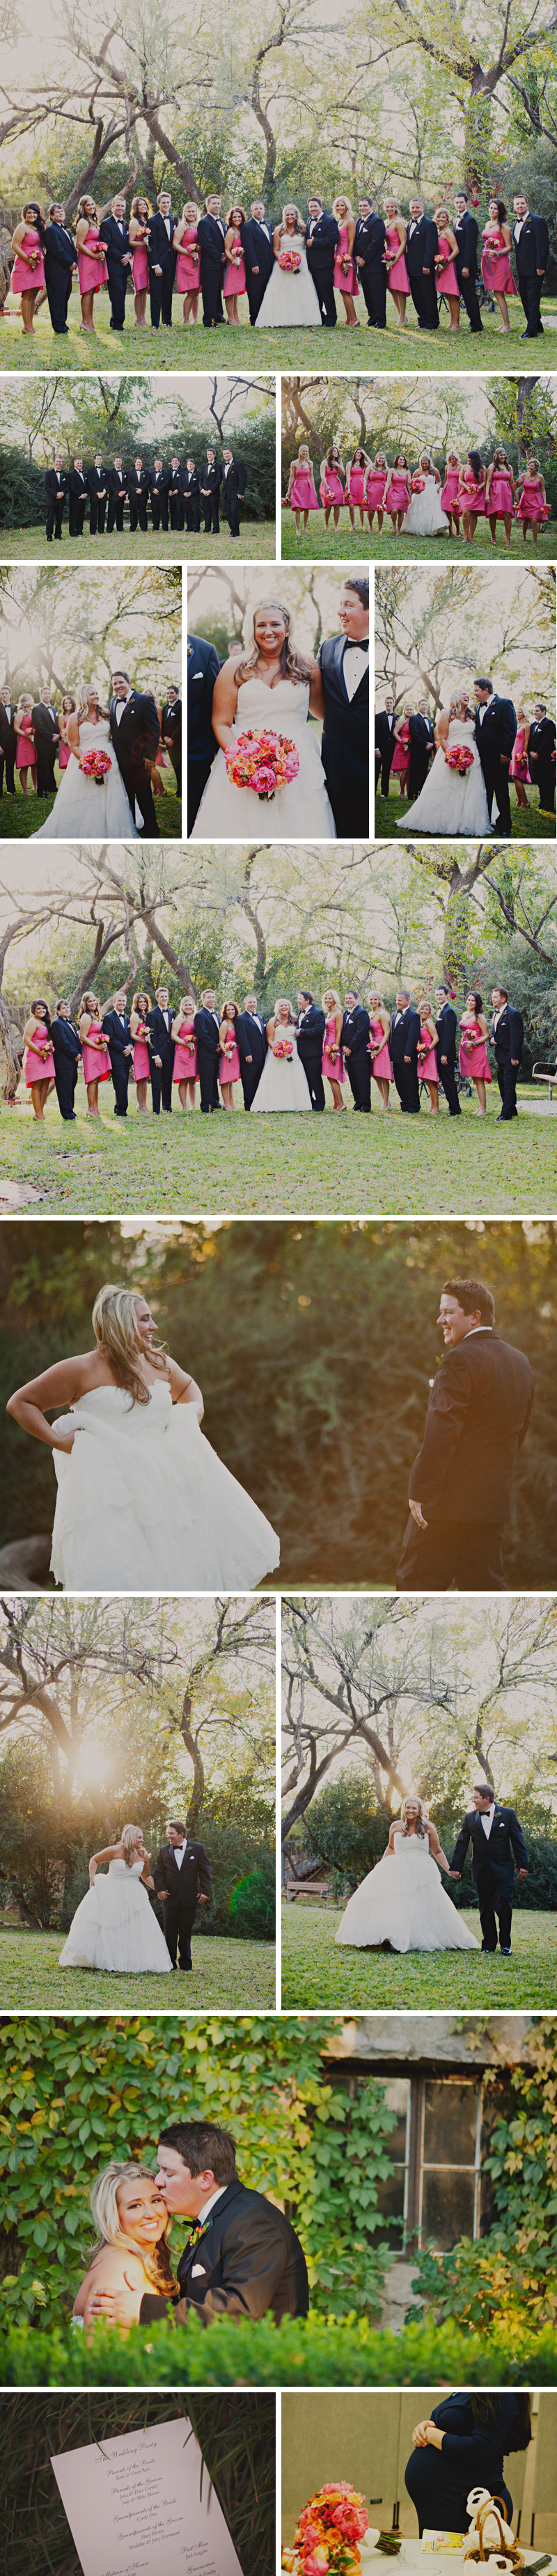 Dallas-Wedding-Photographerc011